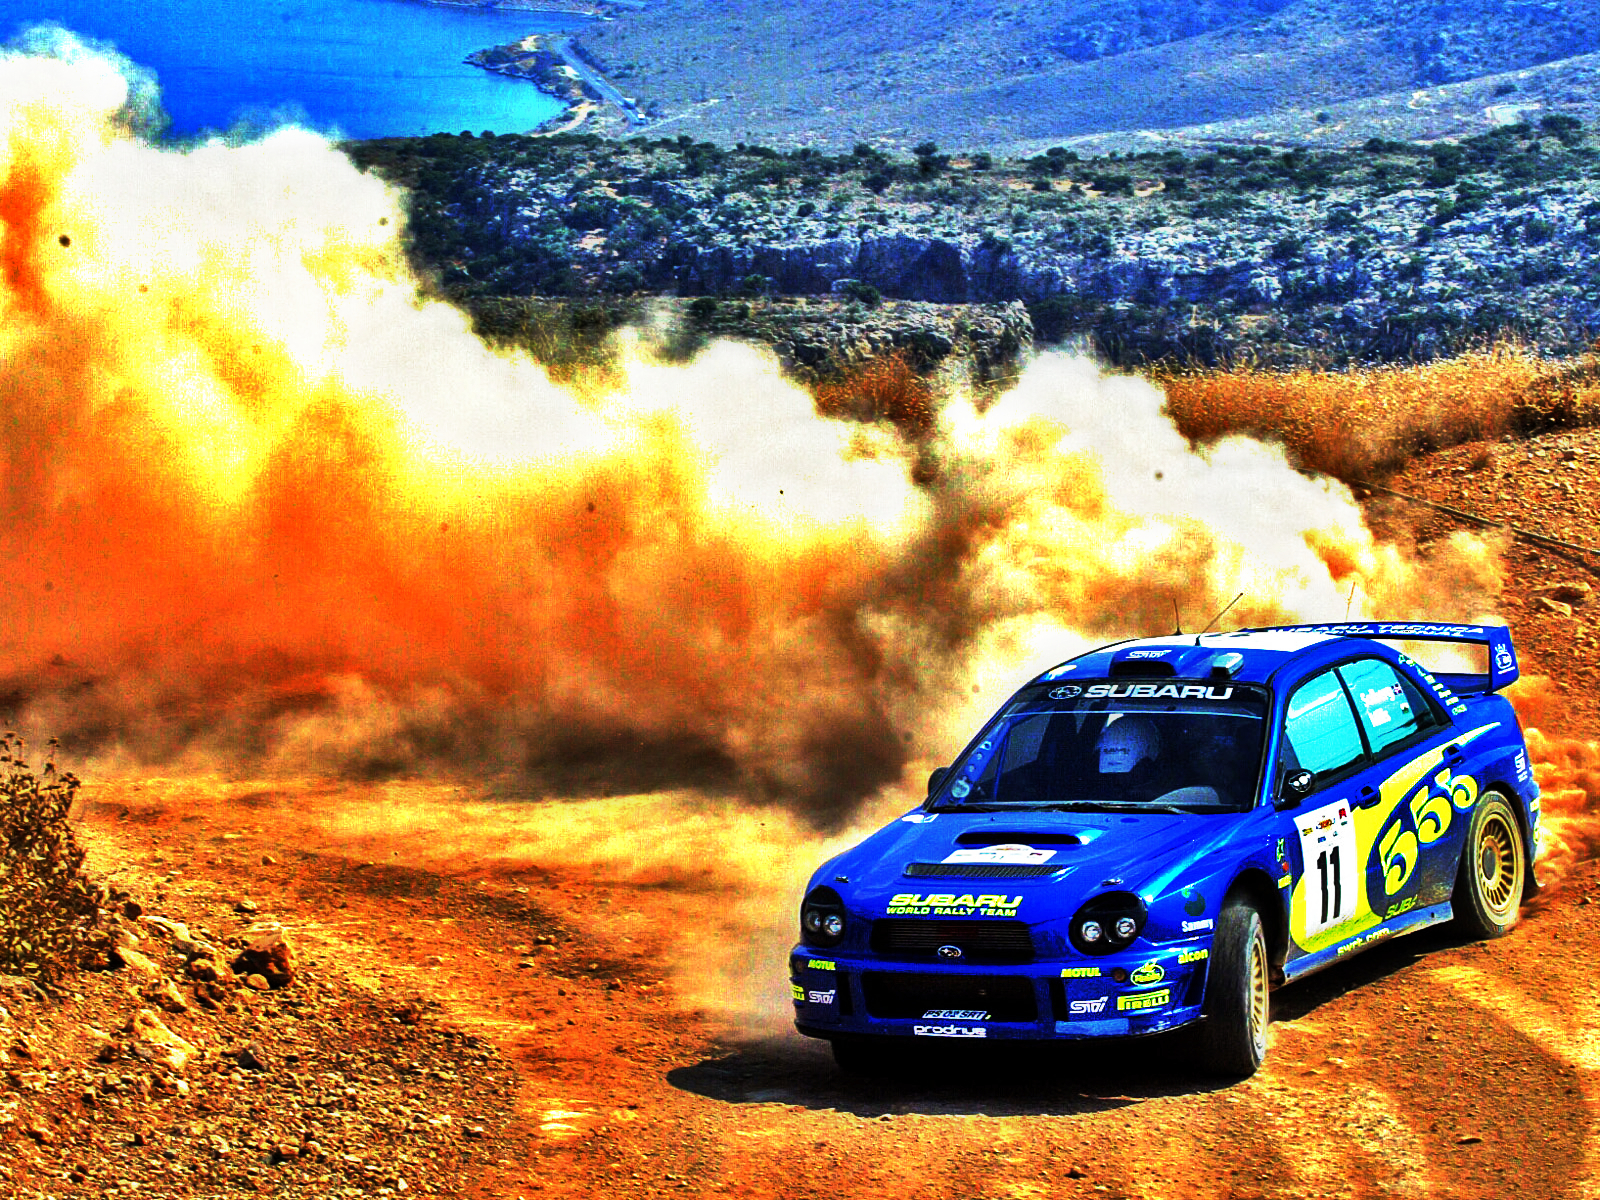 cars rally Subaru Impreza HD Wallpaper